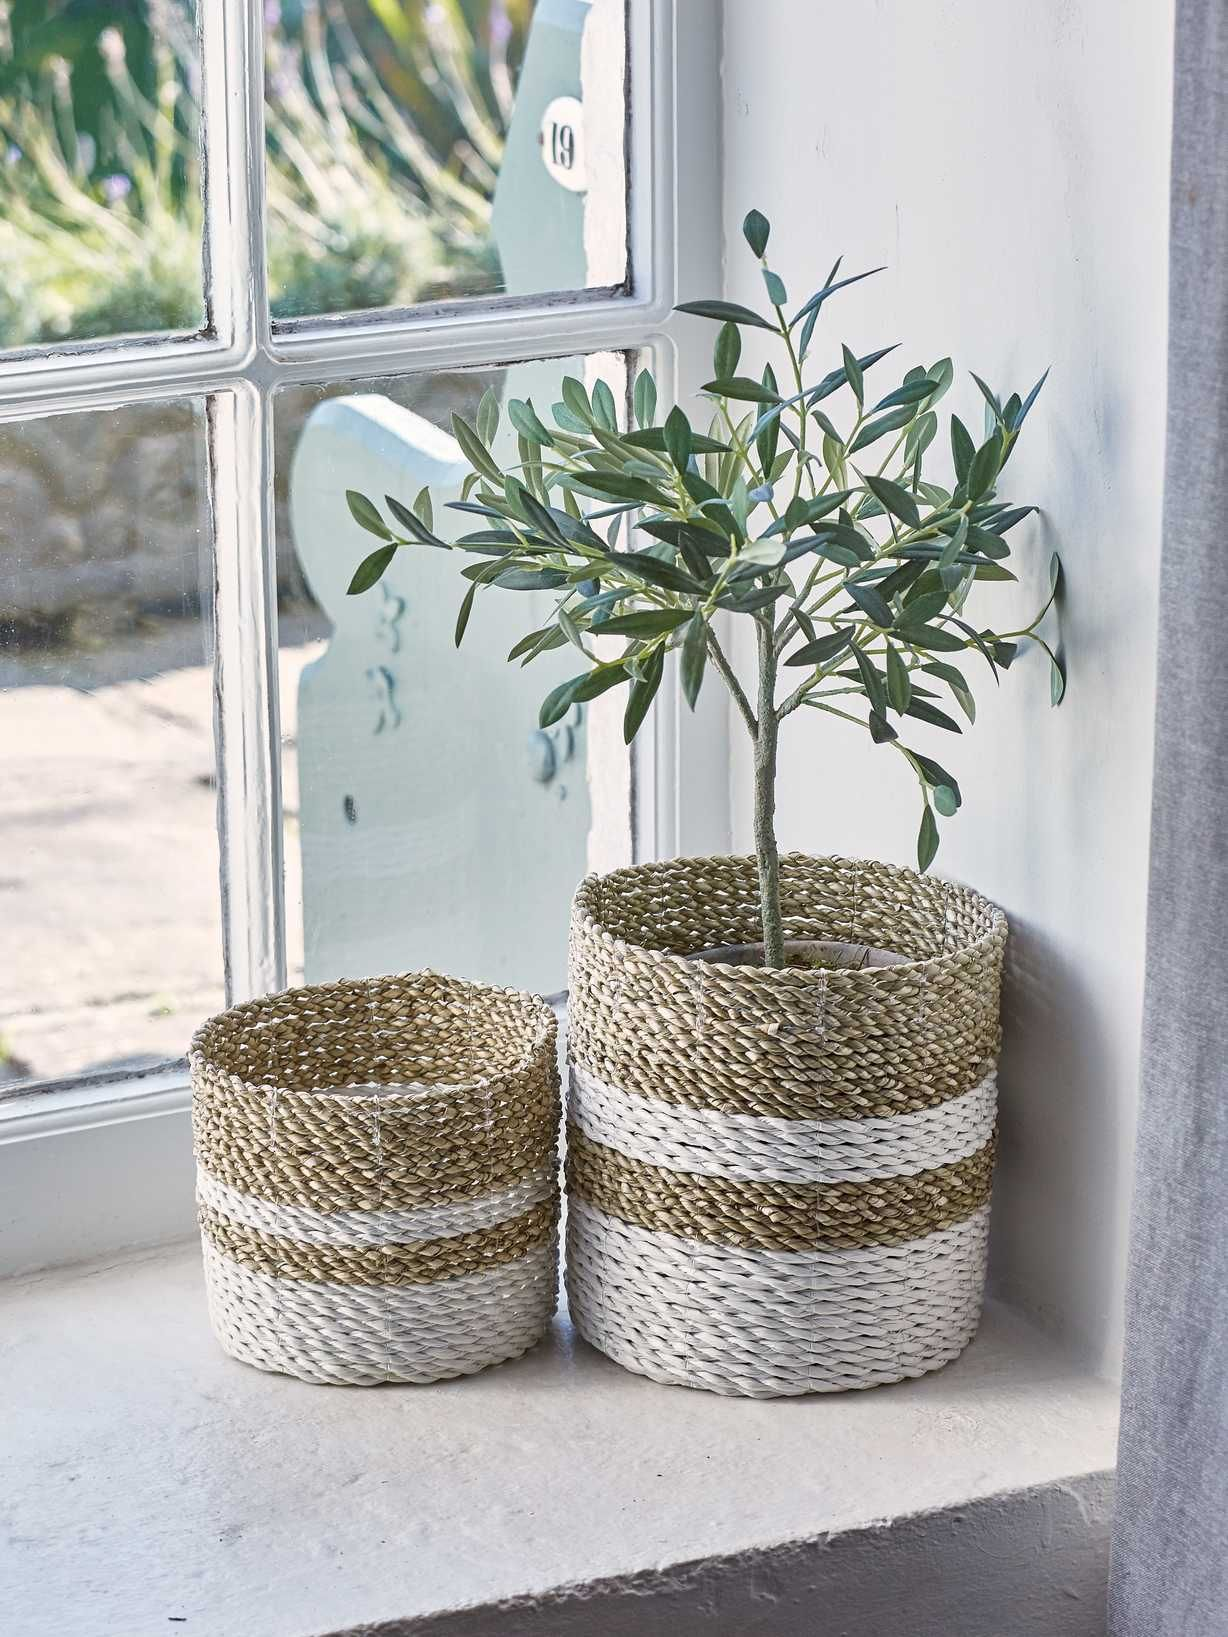 Comment Fabriquer Un Terrain De Basket seagrass basket set | storage baskets diy, diy shelves